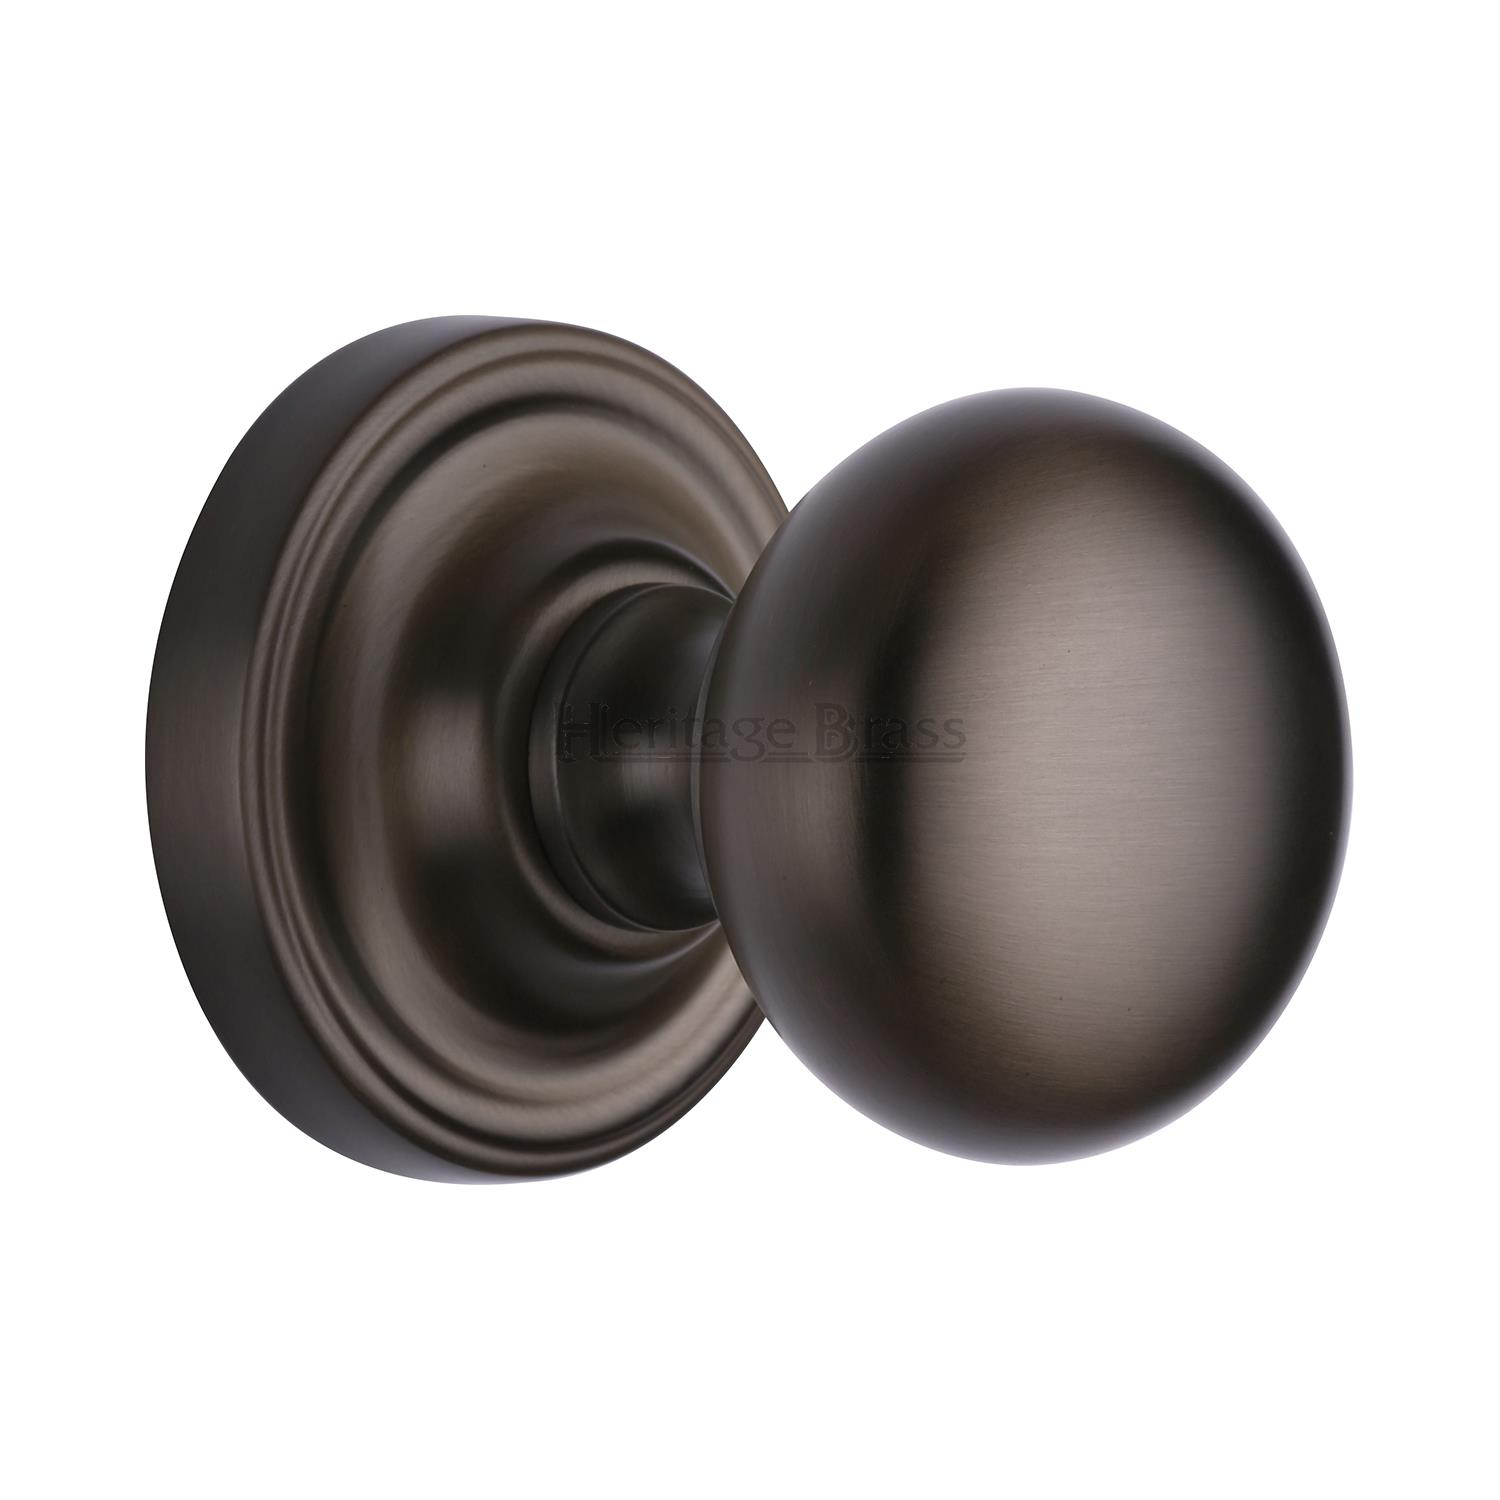 rose door knobs photo - 12